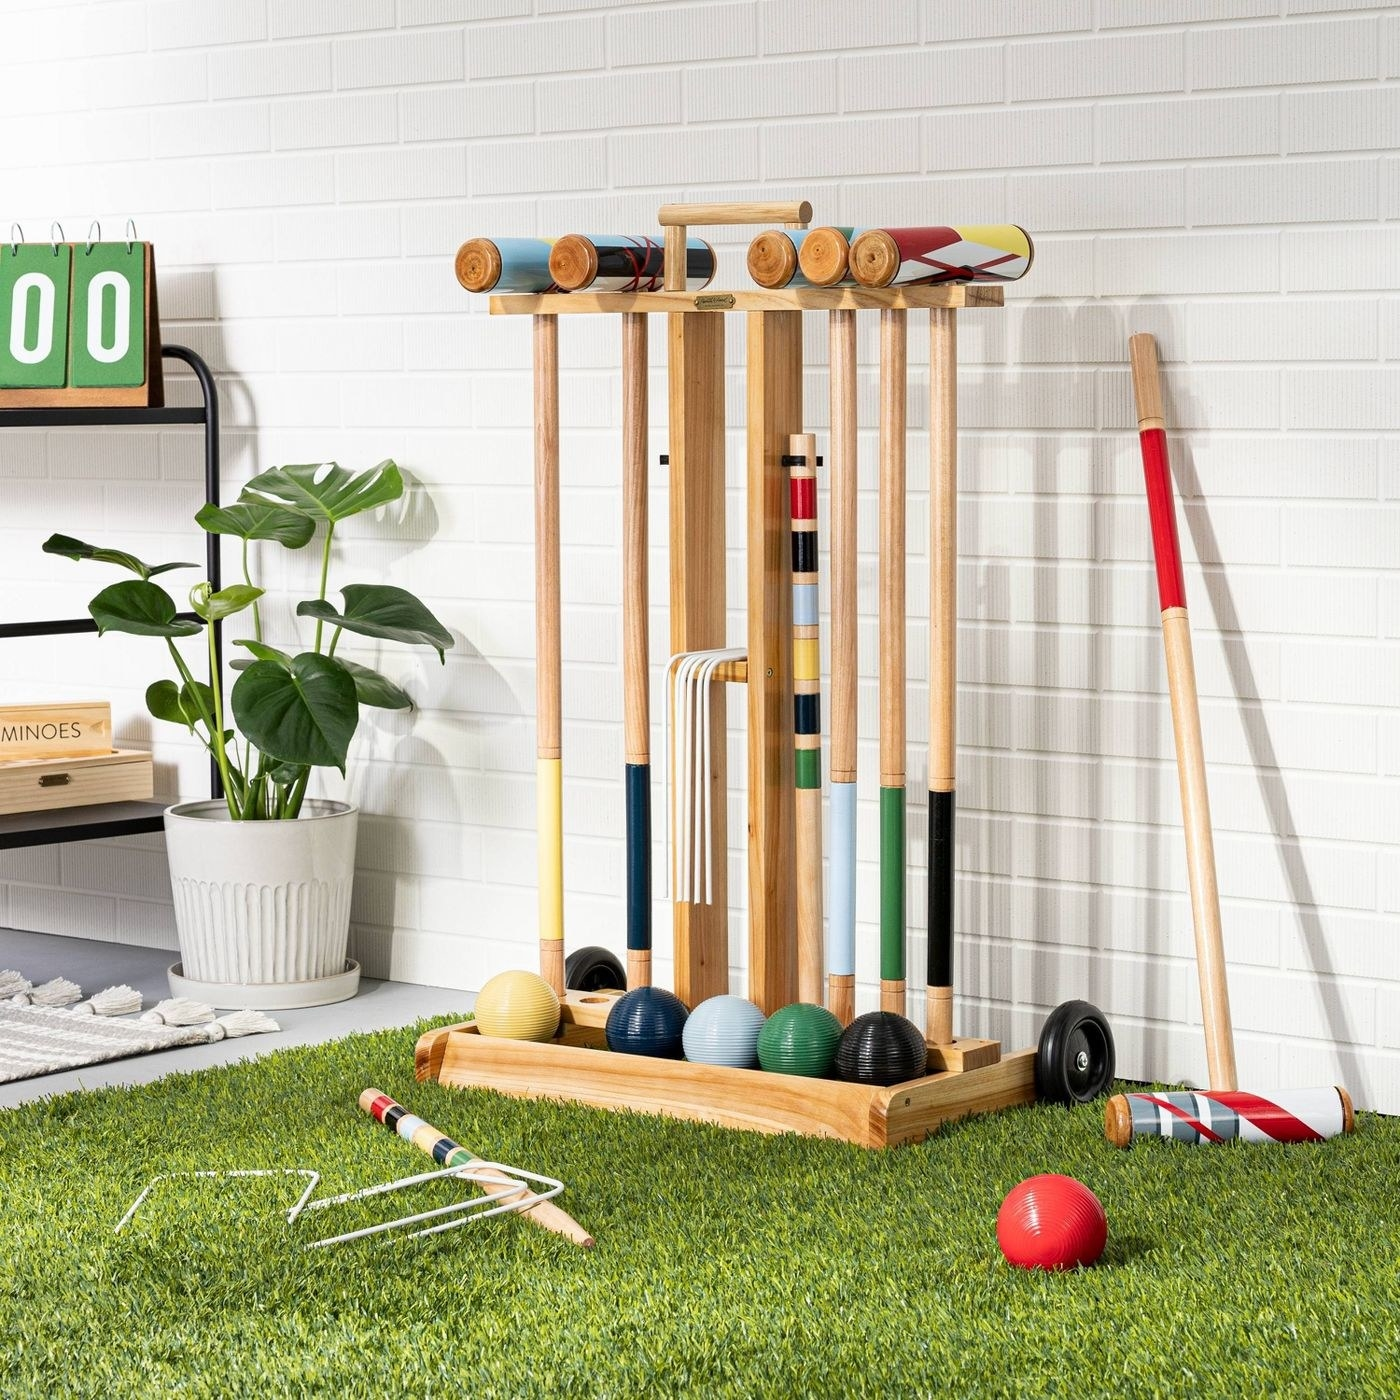 wooden game set with yellow, blue, navy, green, black and red balls